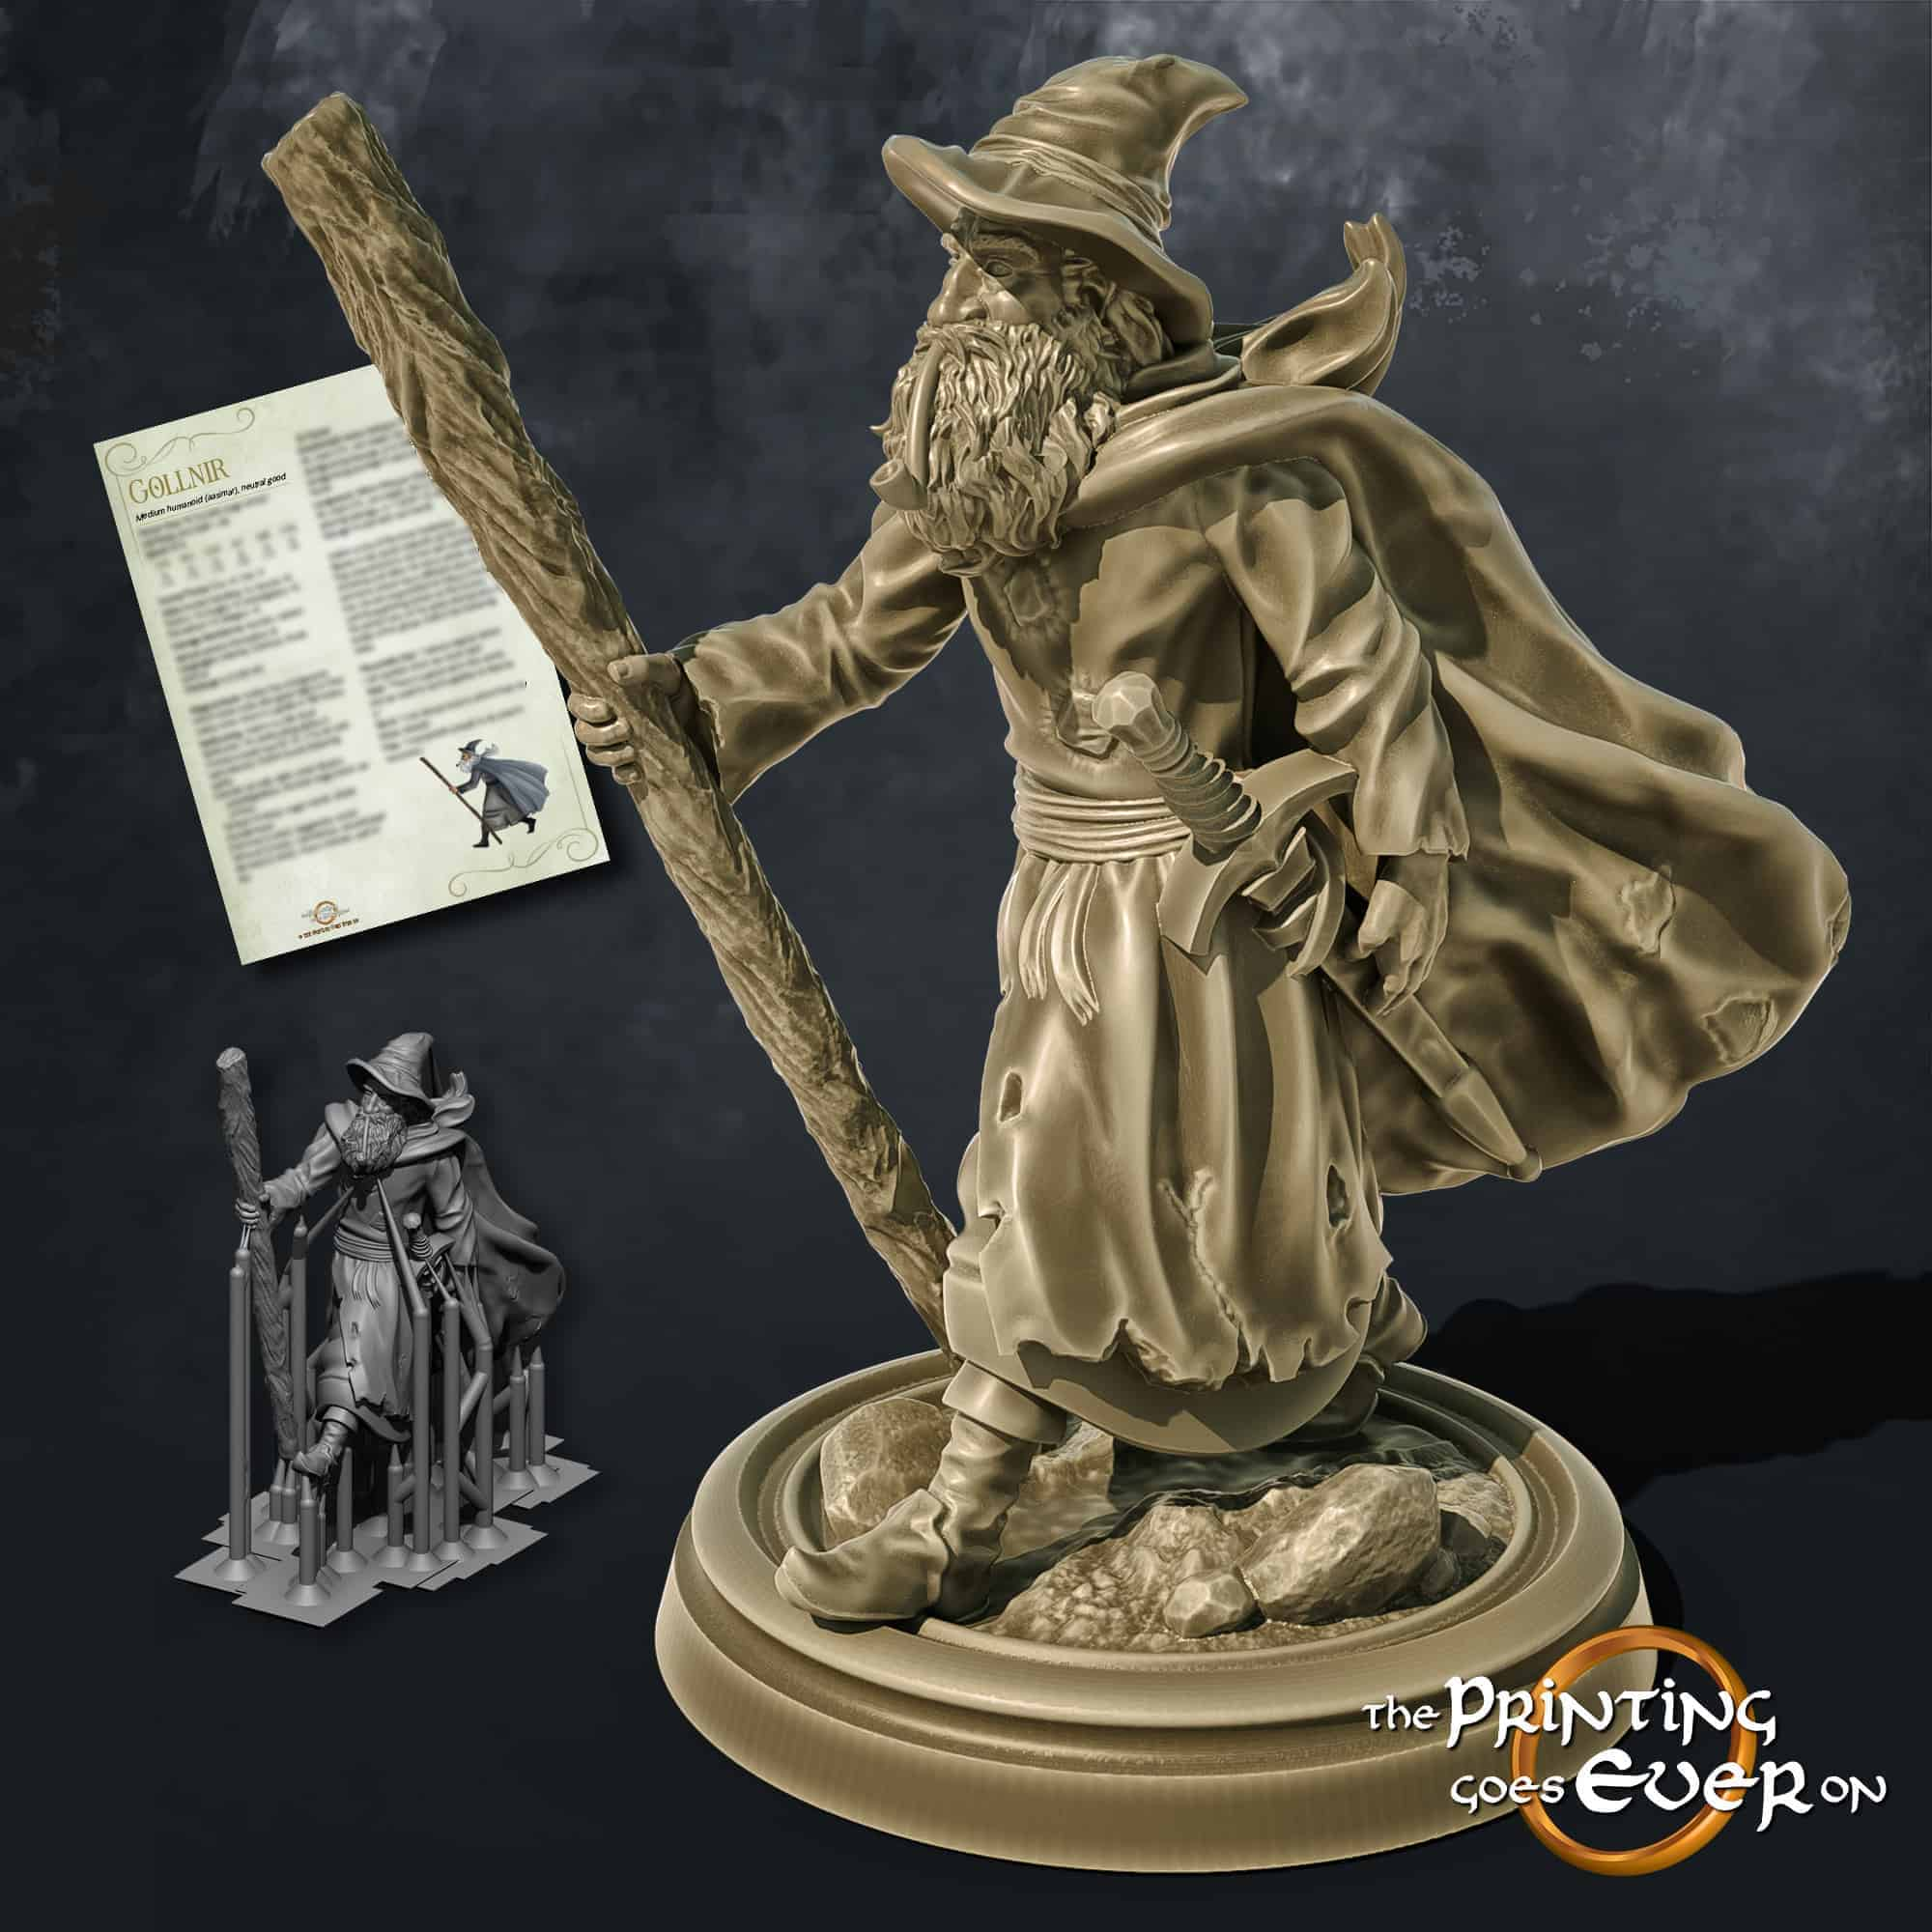 gollnir the old wizard mage with staff and sword beard 3d printable tabletop miniature from the printing goes ever on patreon welcome trove